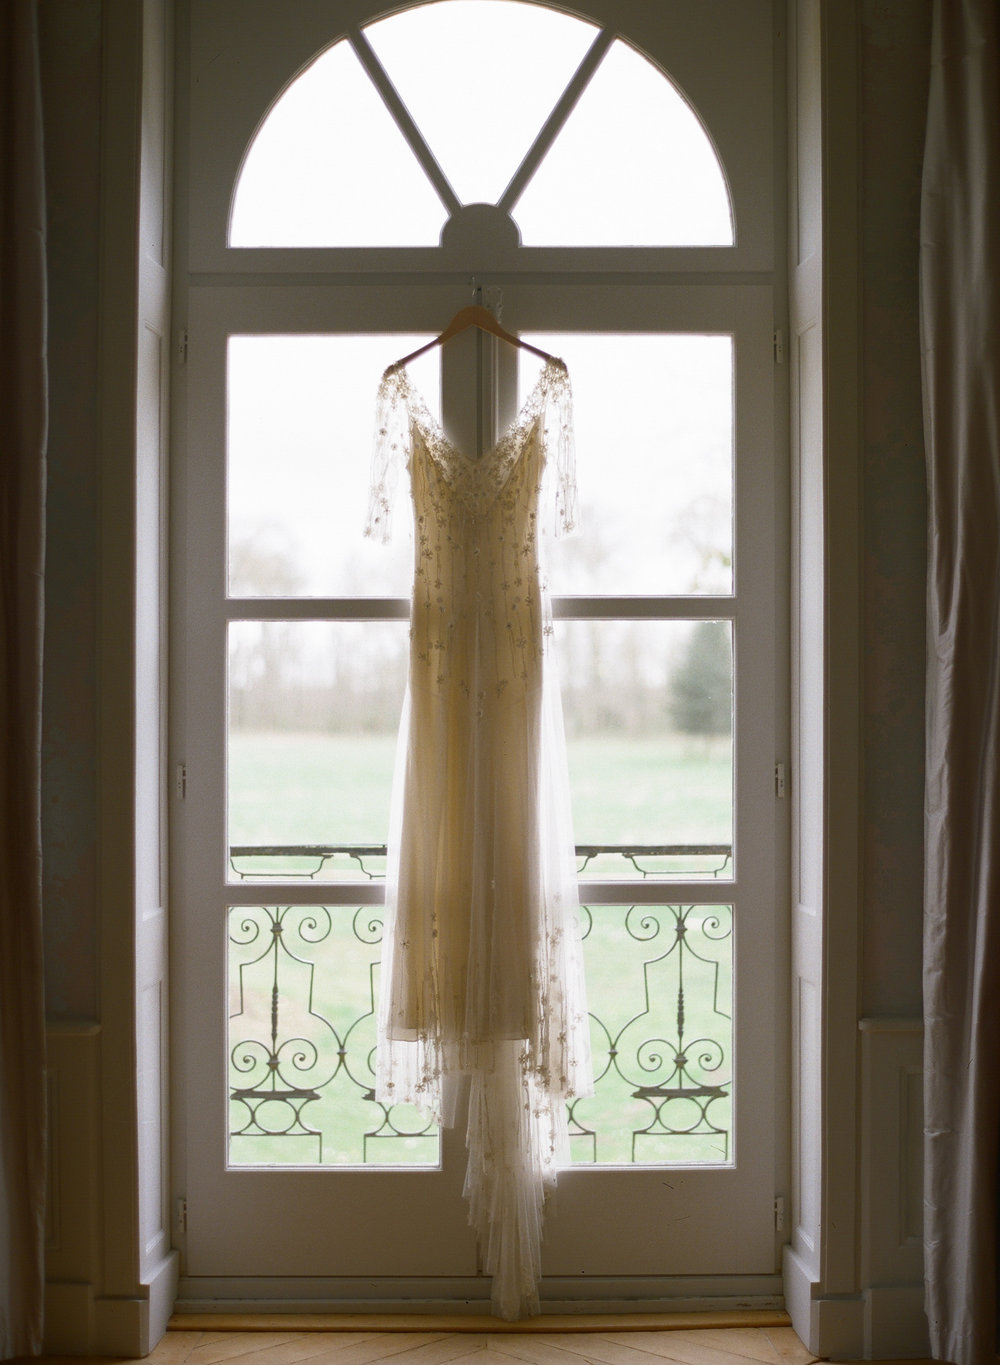 A wedding gown hangs in the window at Chateau de Varennes; Sylvie Gil Photography